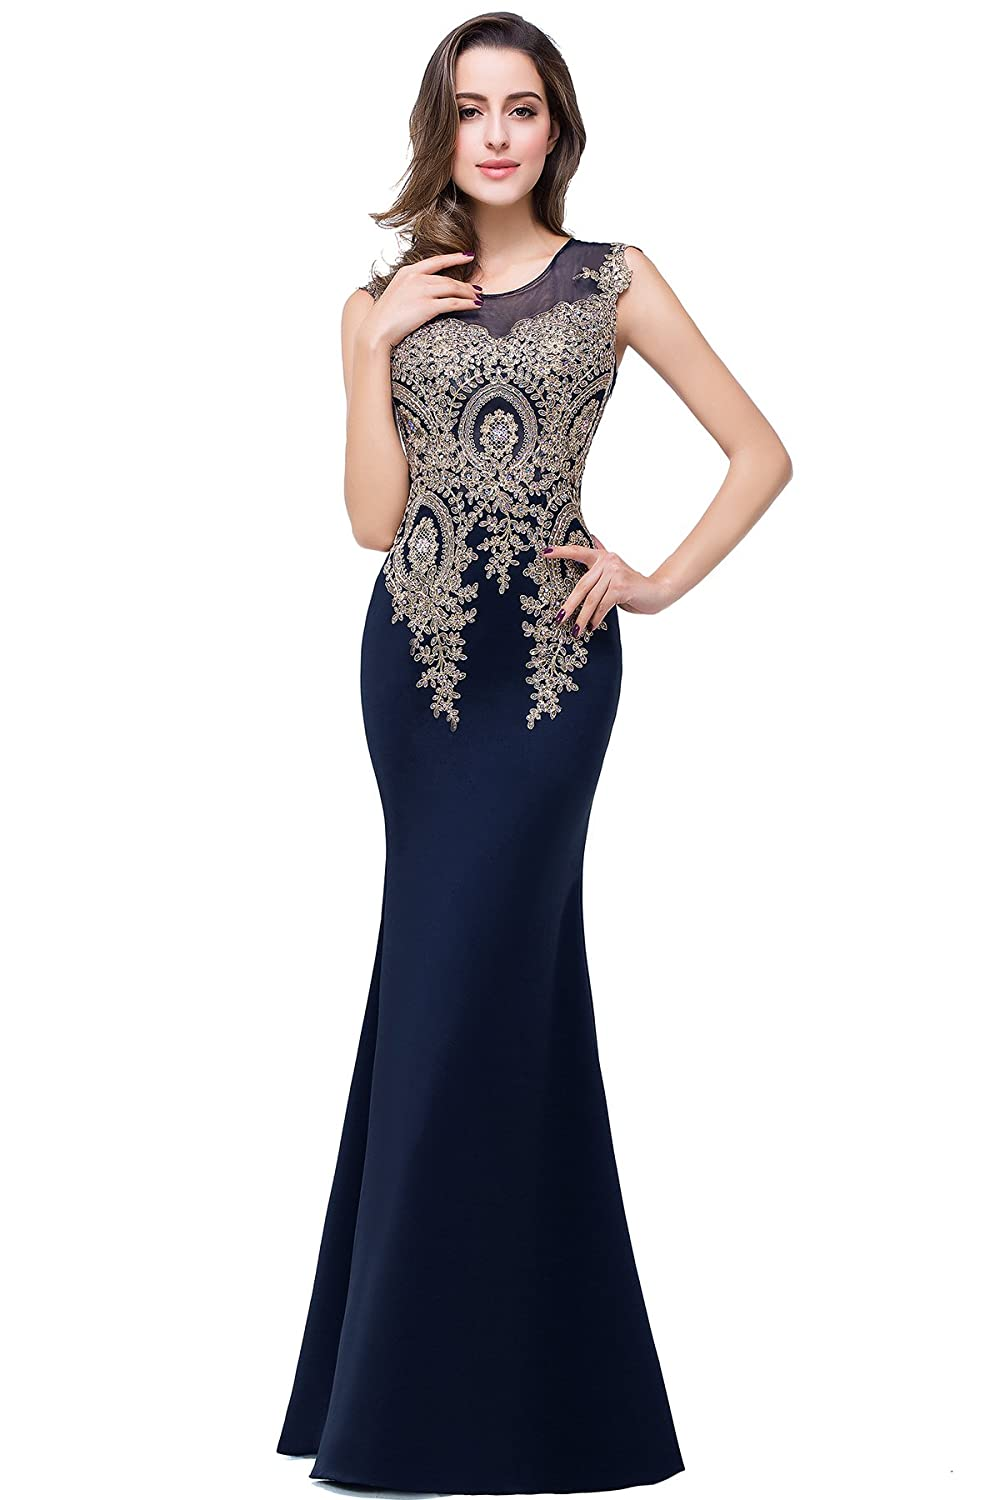 bf5b356450e58 Zipper Side closure. Mermaid Beaded evening Dress Black lace formal dress  Sexy party dress. Occasion:Formal,Prom,Party,evening. Neckline & Sleeve :  Scoop ...